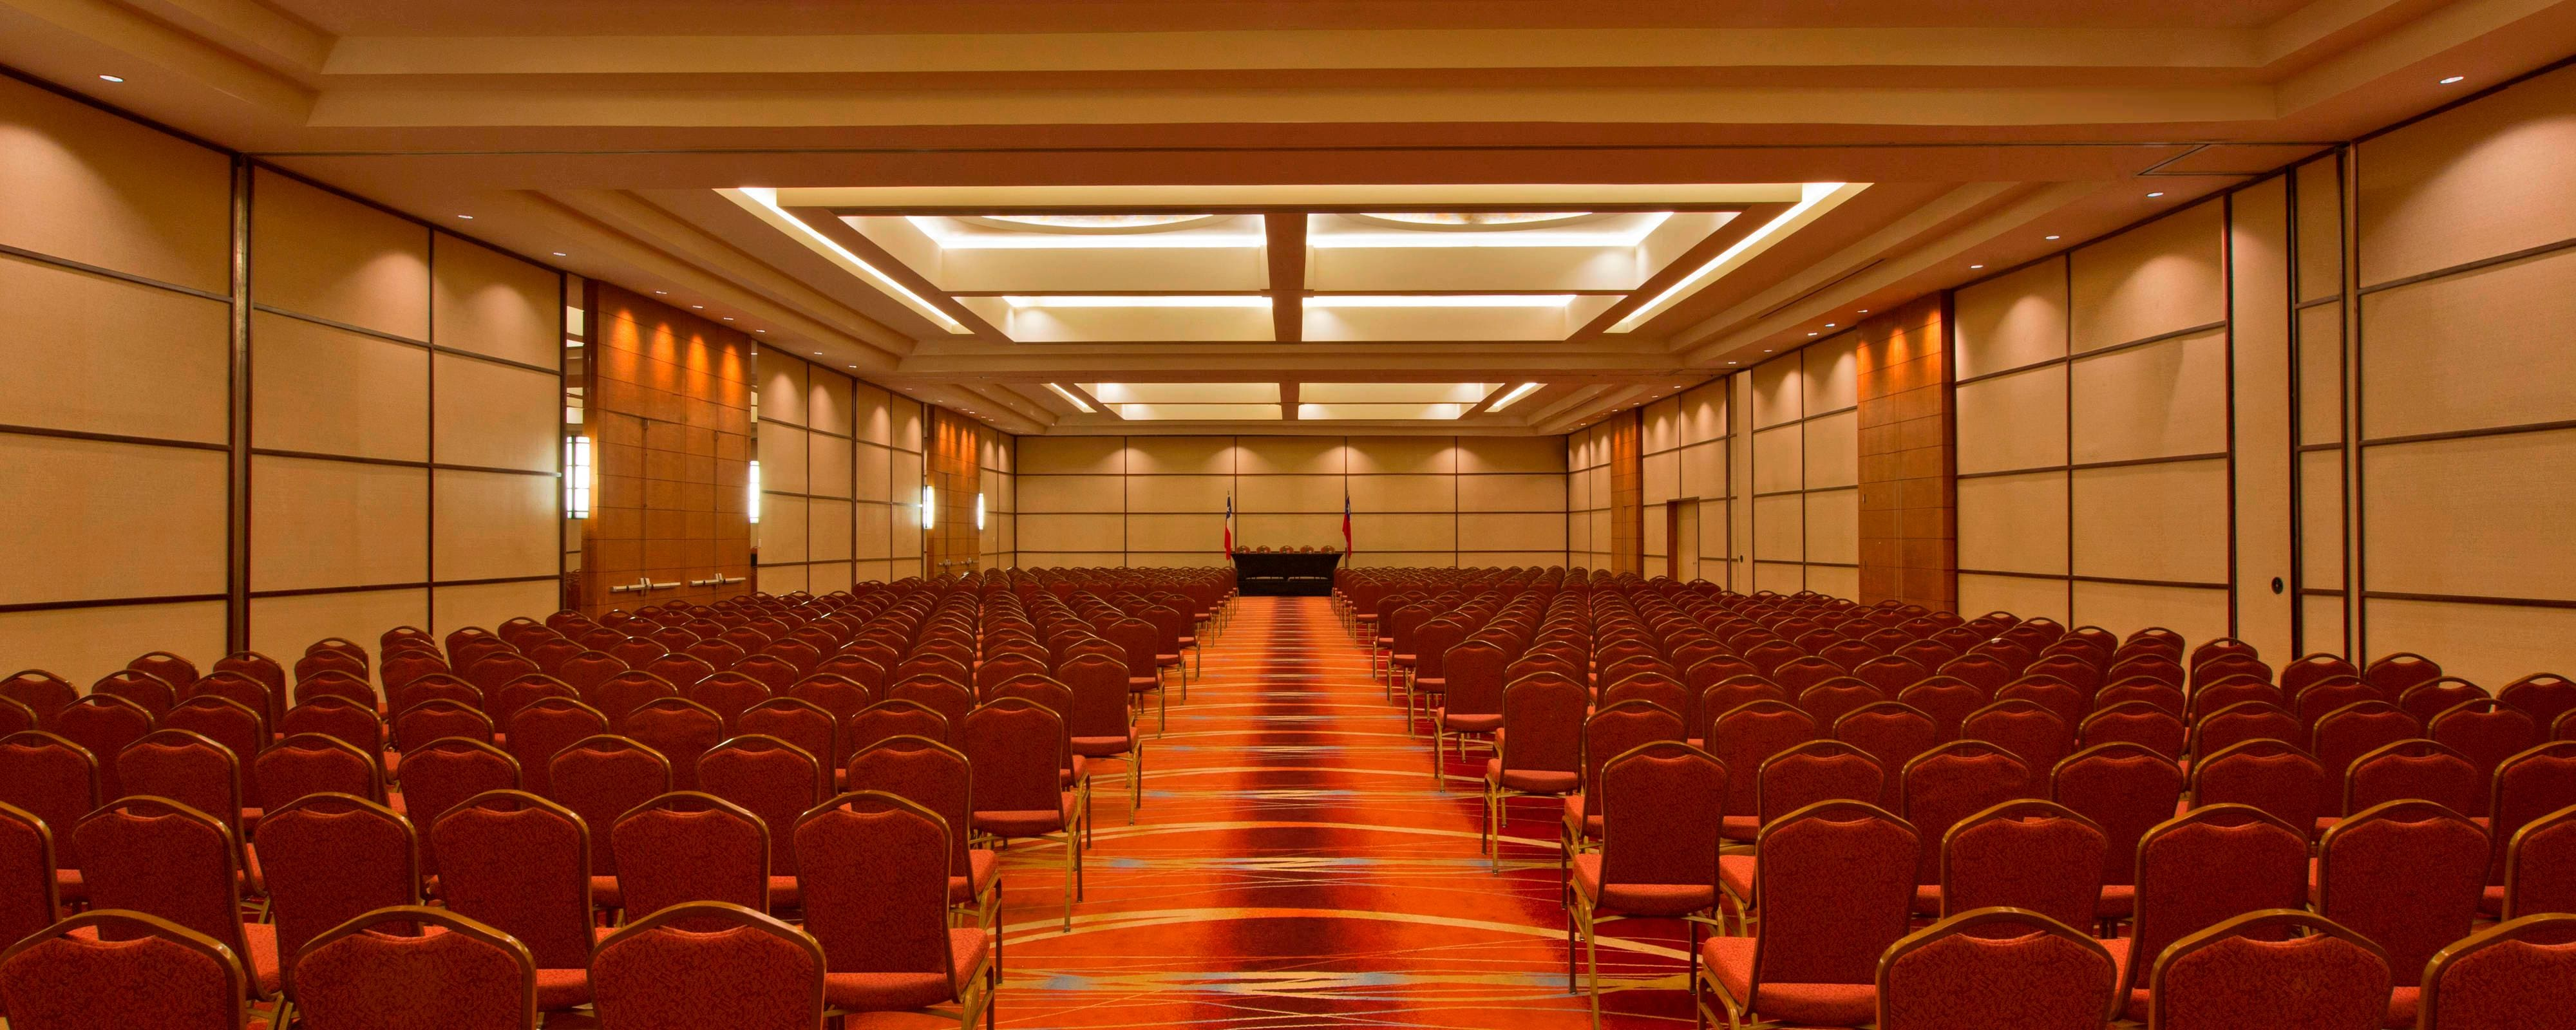 San Cristobal Room - auditorium setup